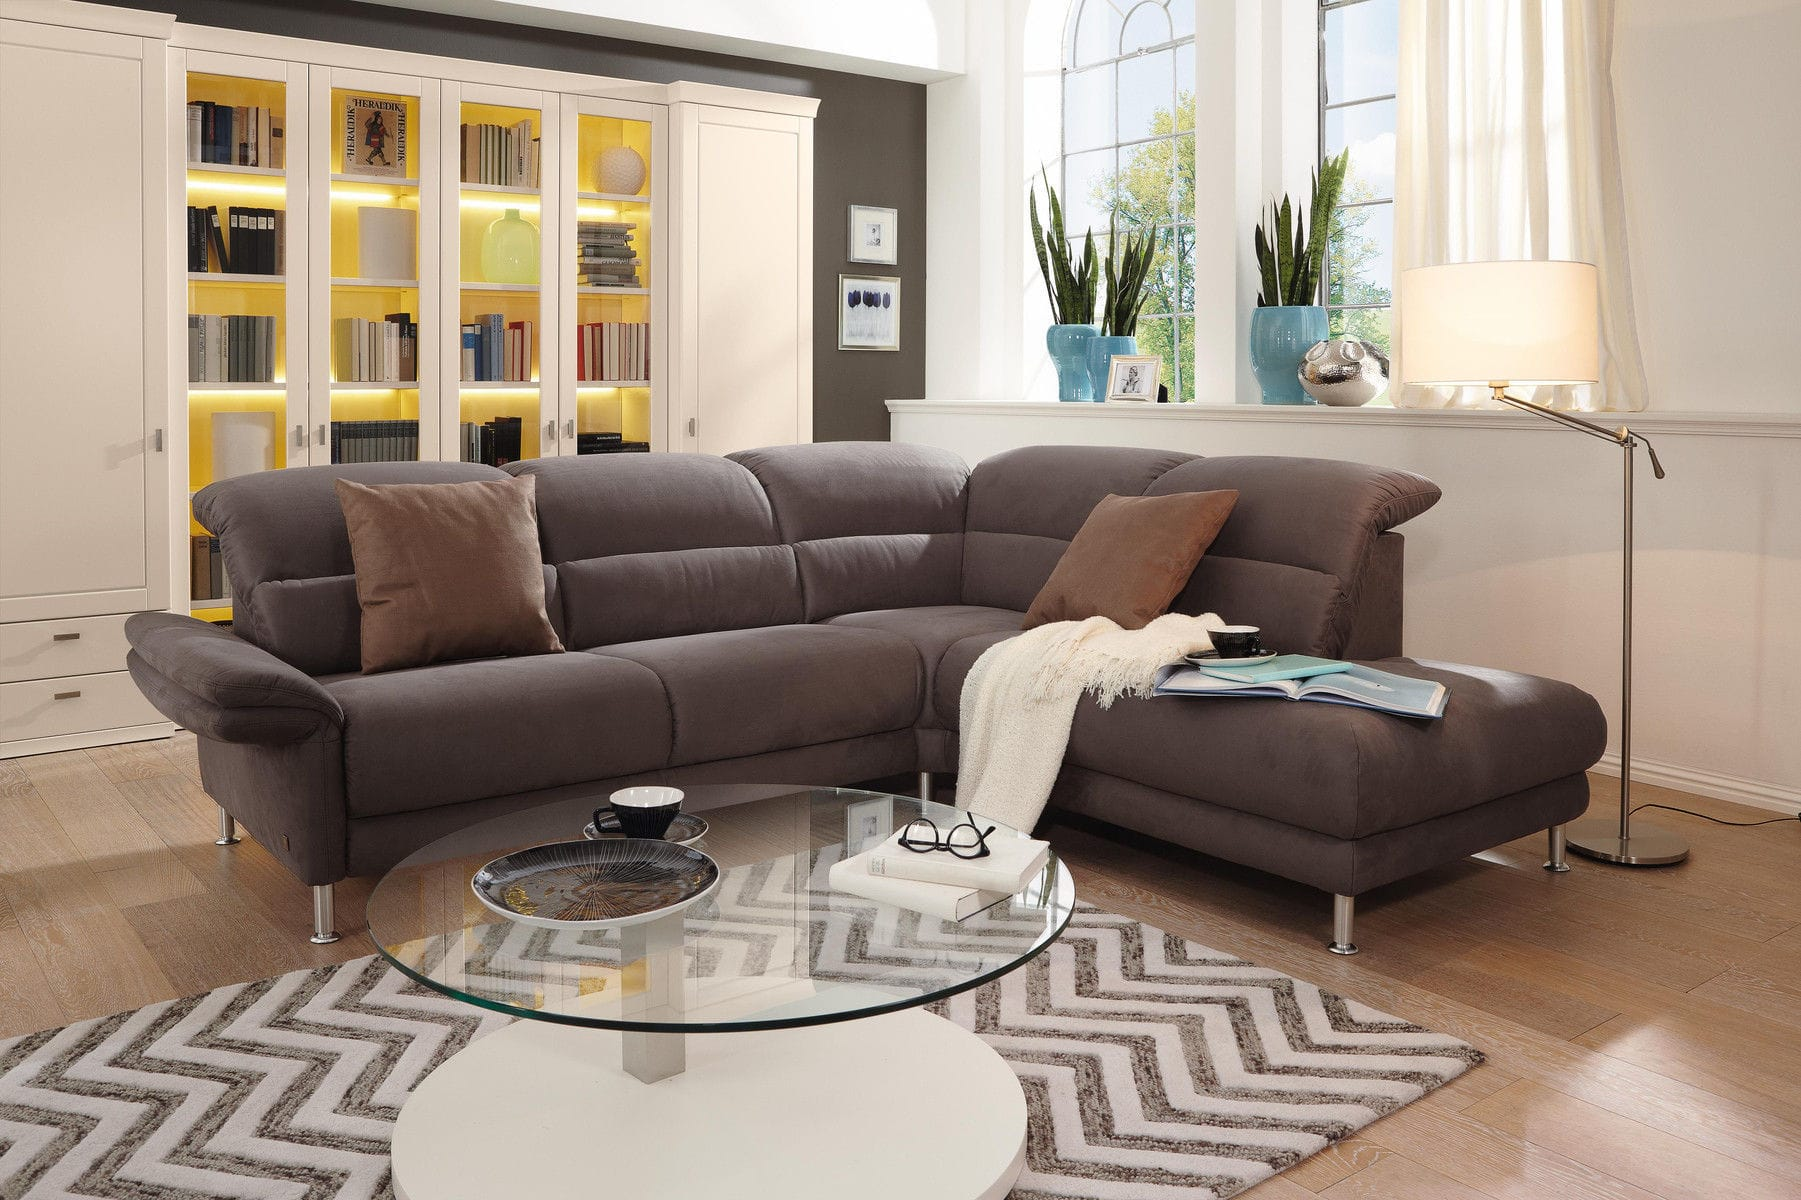 Modular Sofa Contemporary Fabric Leather Mr 390 Musterring